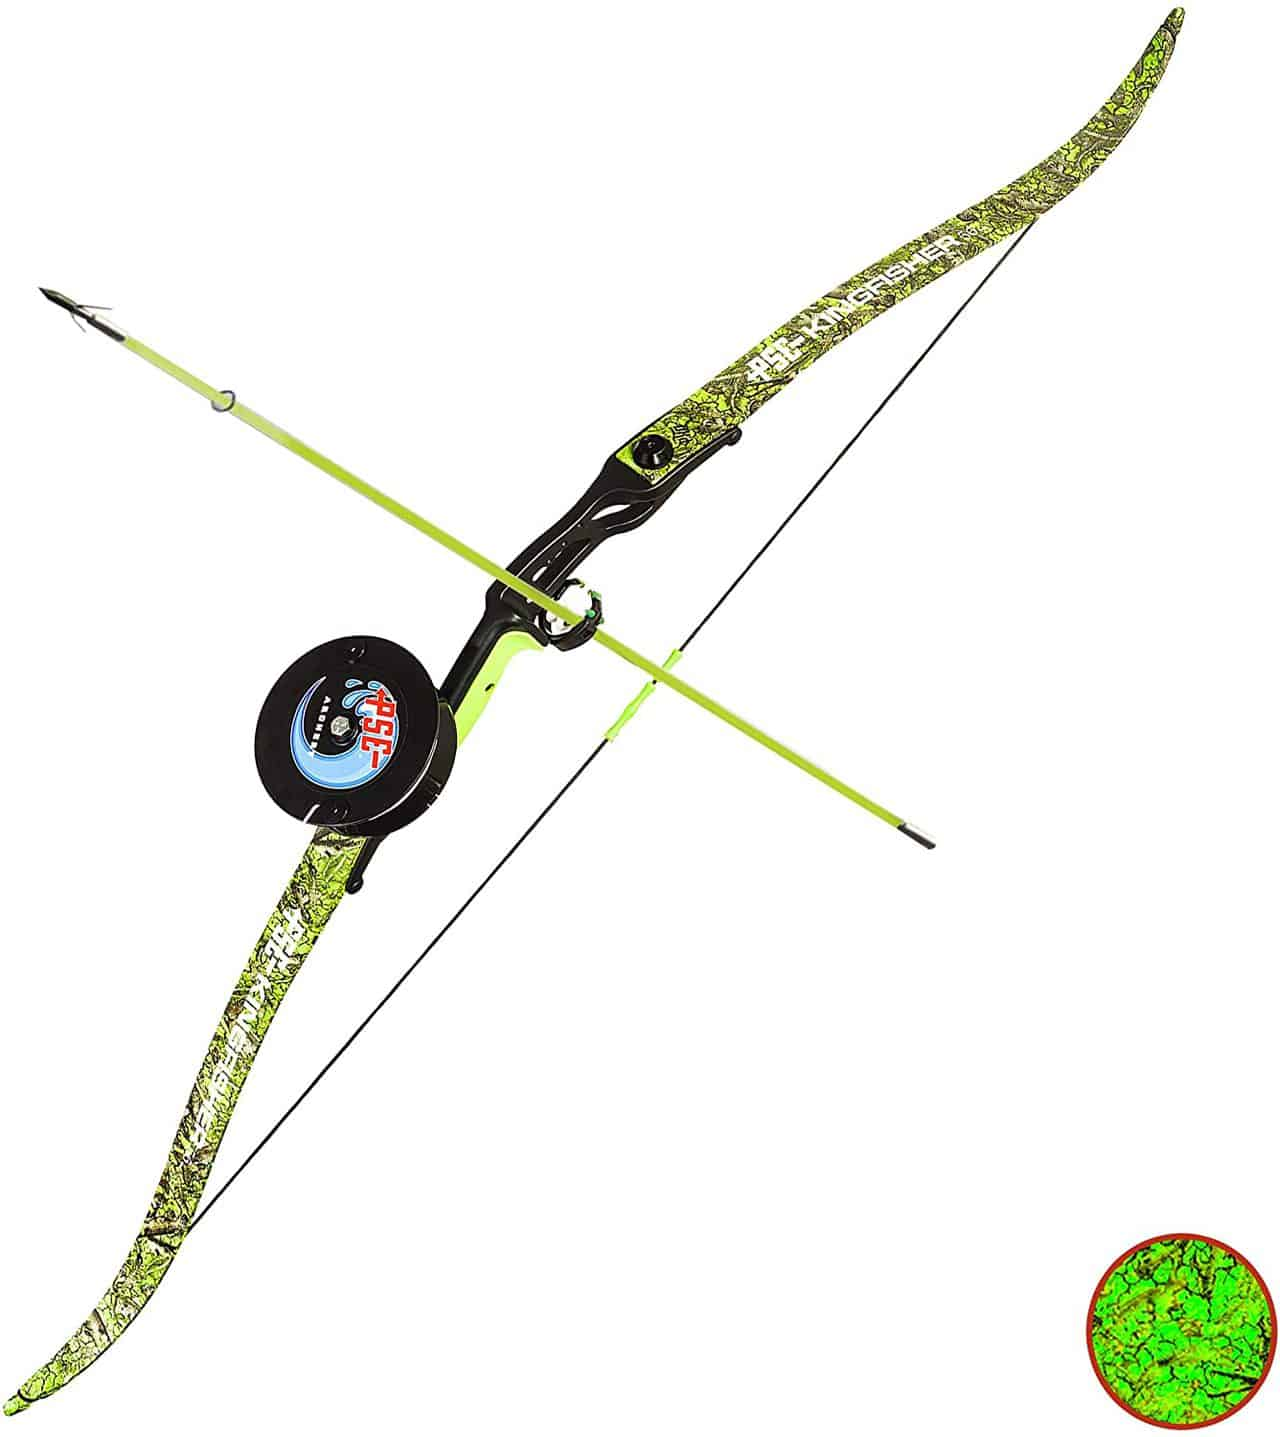 Bow, Arrow and Drum Reel by PSE Archery